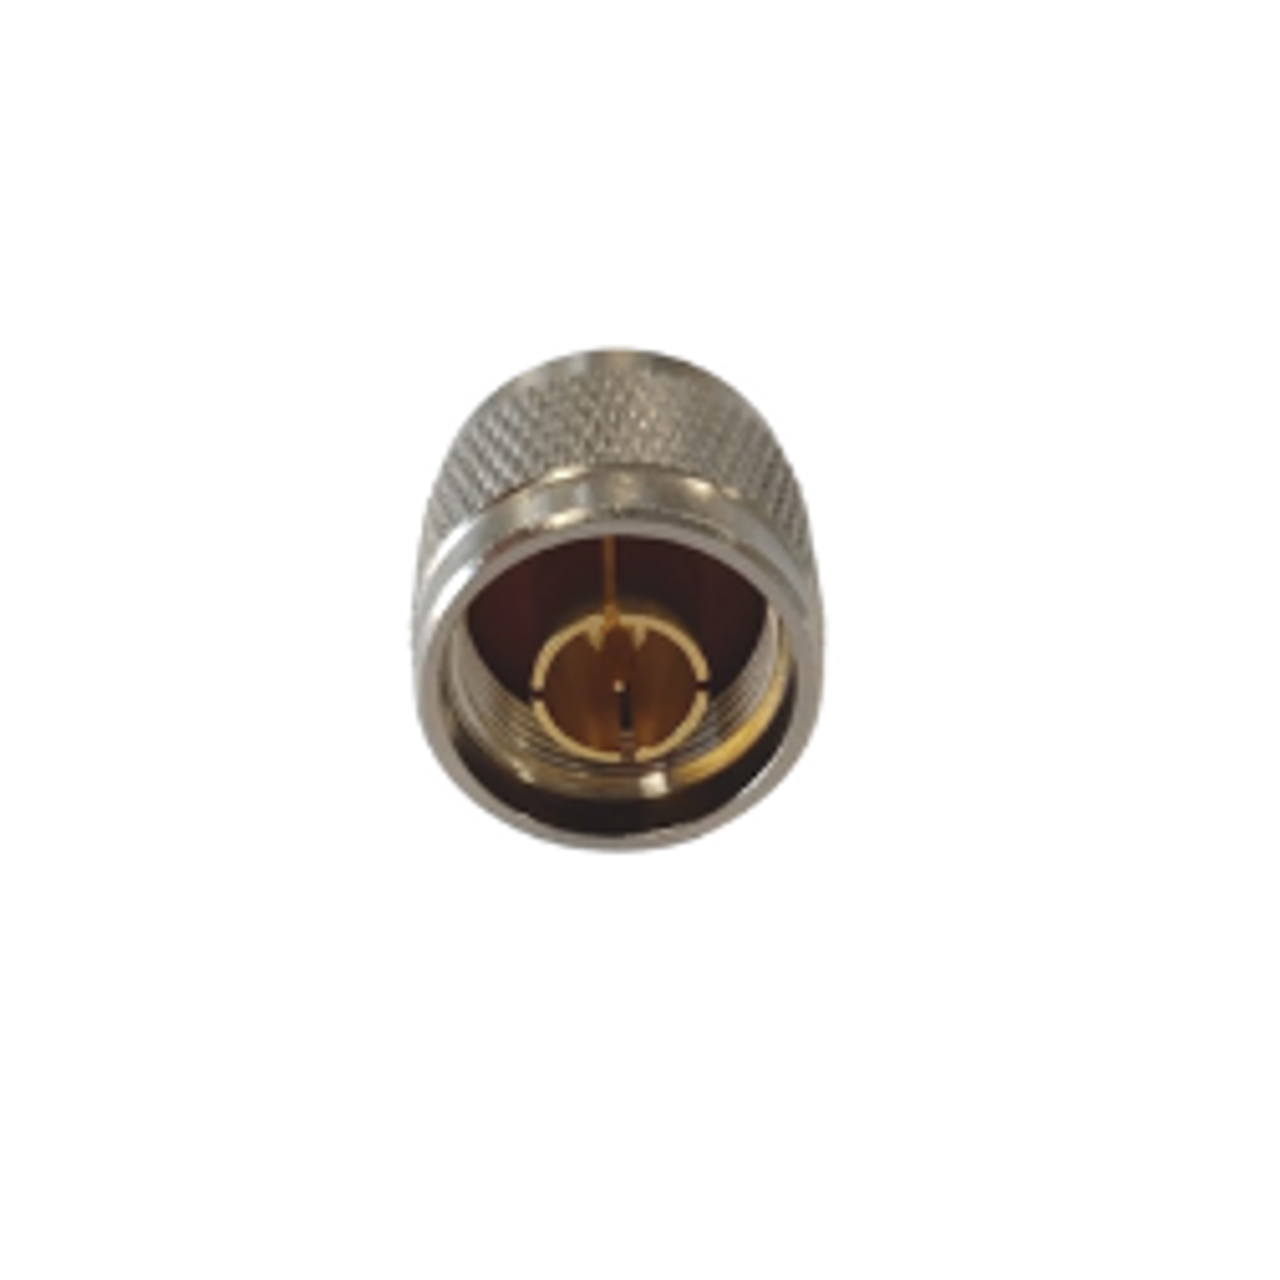 Bolton Barrel Connector - N-Male to SMA-Female bottom view